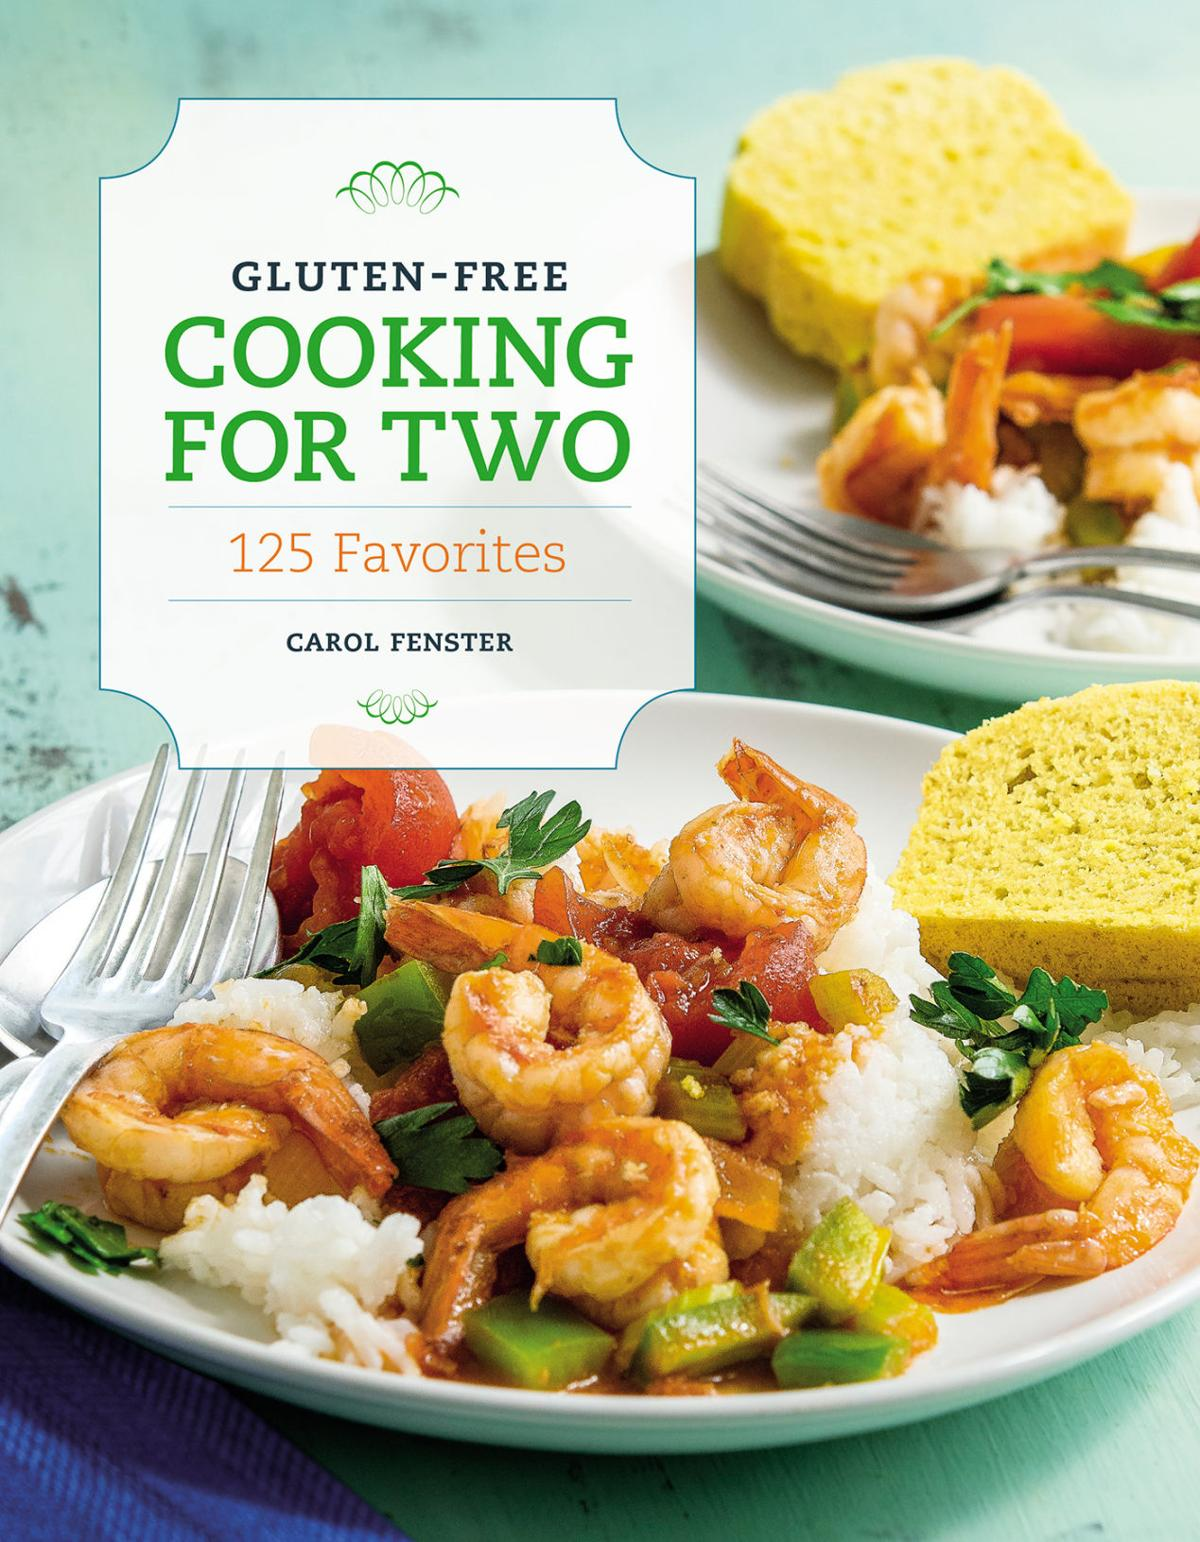 Gluten-Free Cooking For Two Cover.jpg